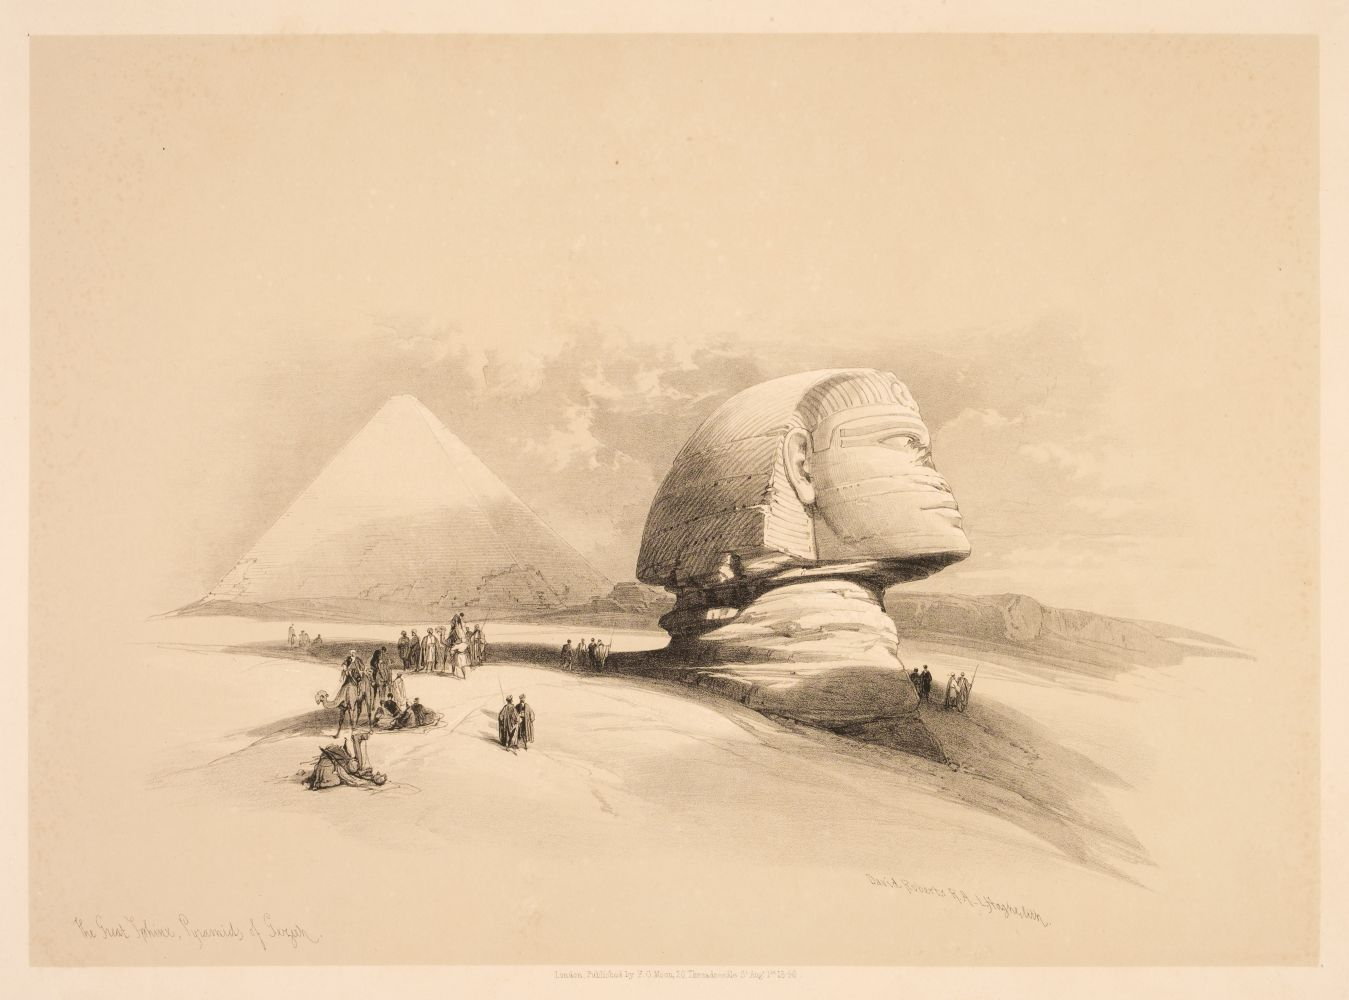 * Roberts (David). Sketches in Egypt & Nubia parts I - 8, 1847